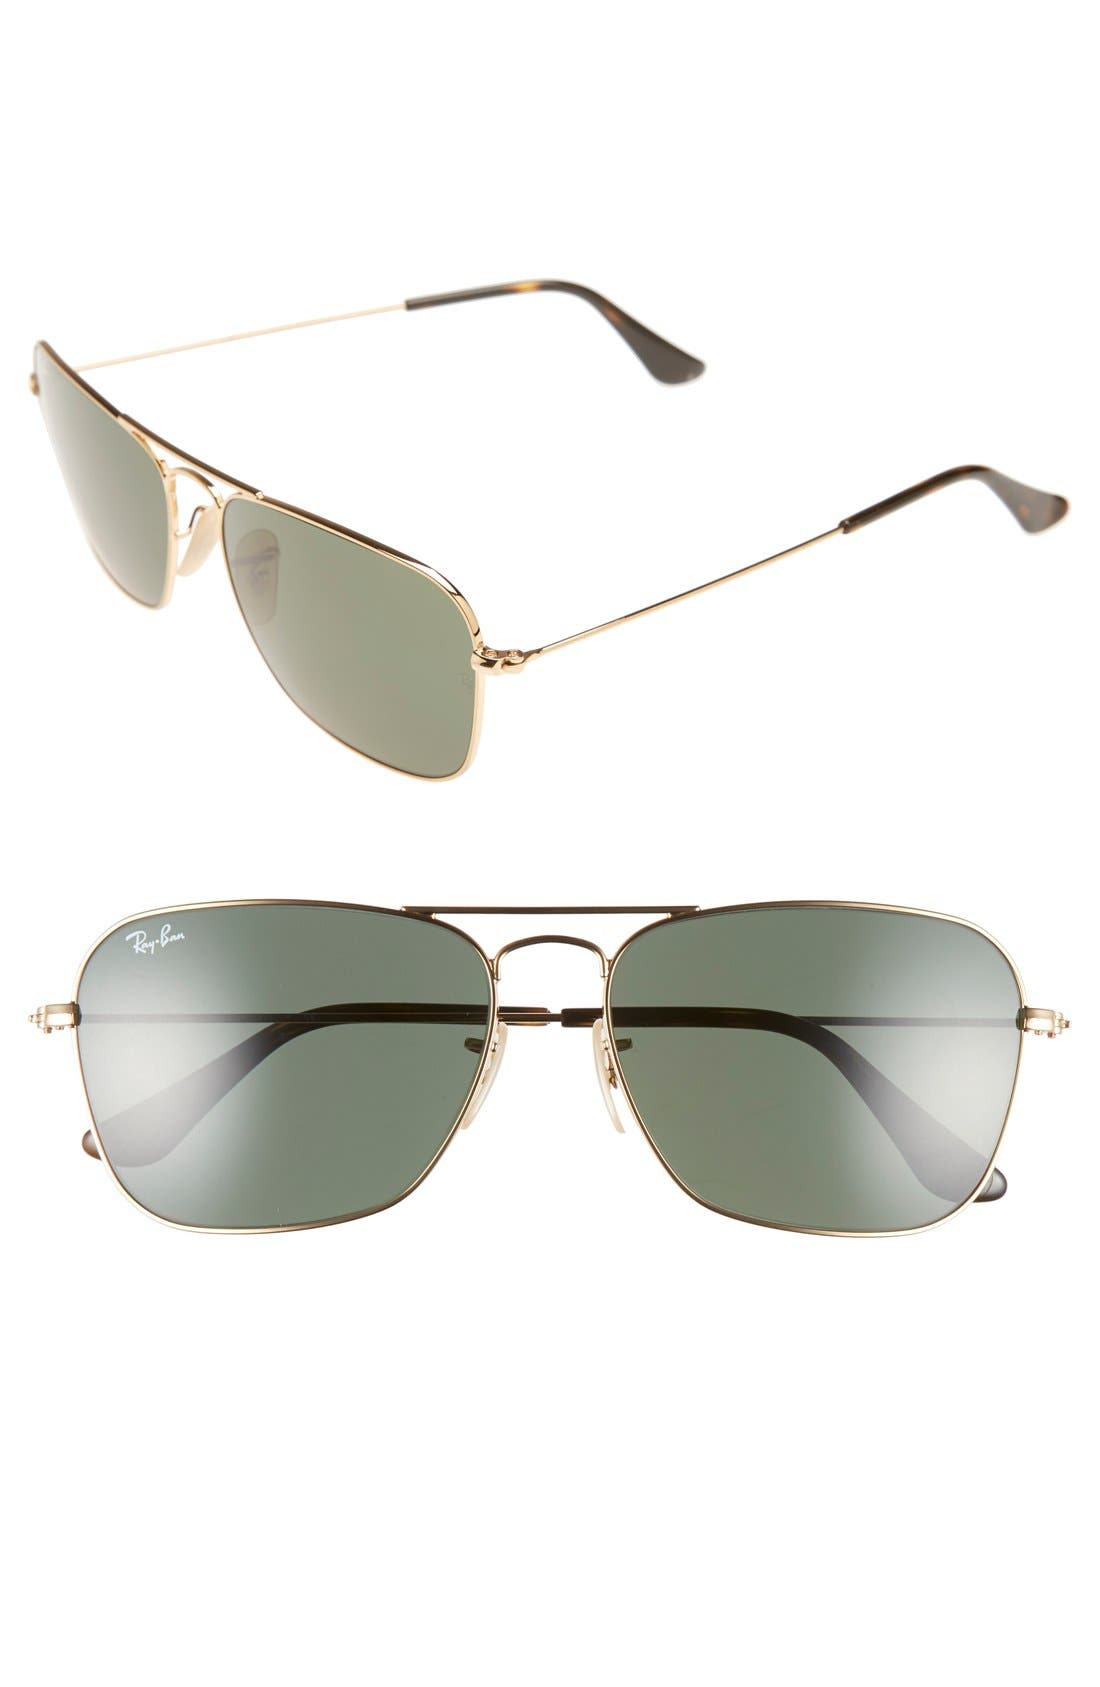 Ray-Ban Caravan 5m Aviator Sunglasses -